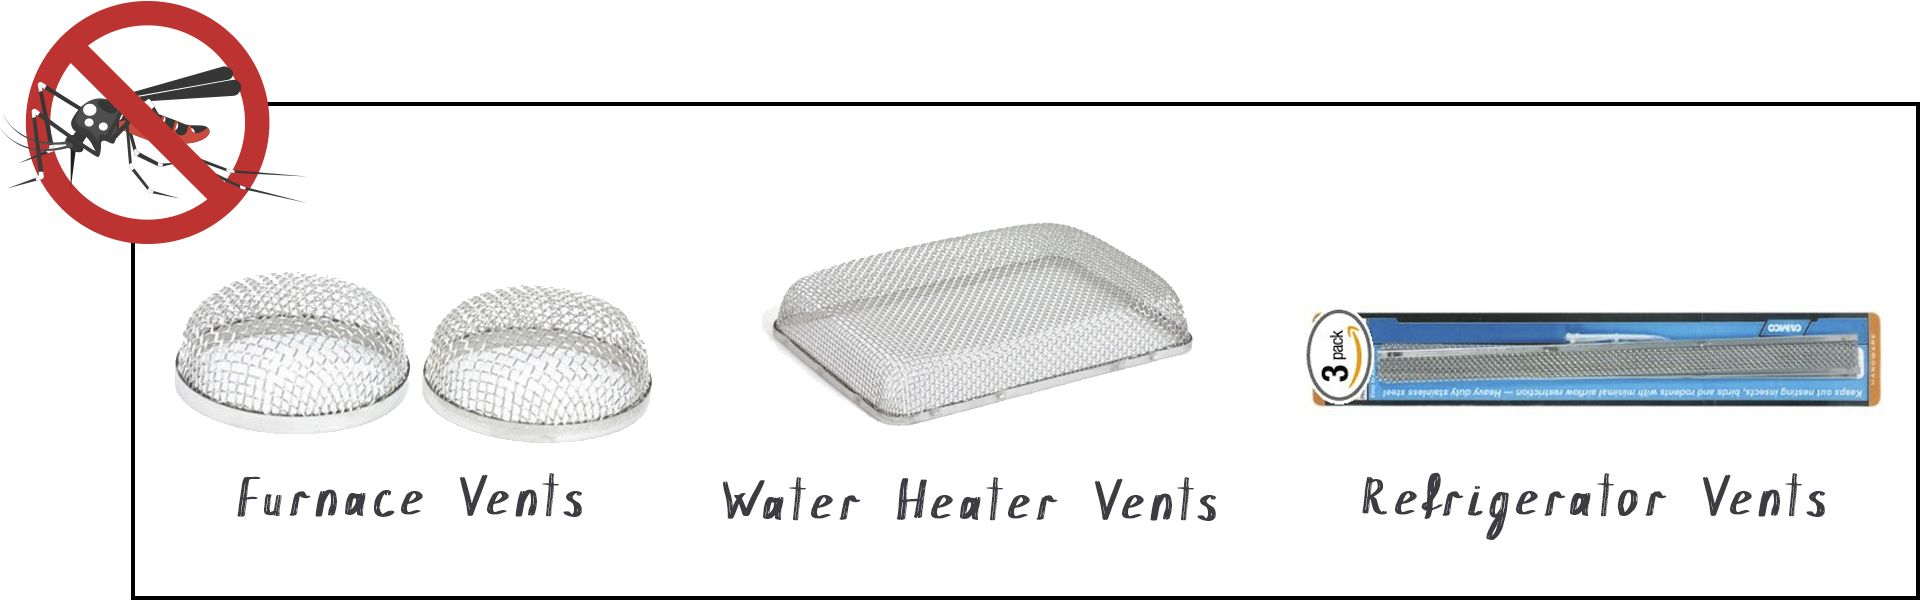 furnace-water-heater-refrigerator-vents